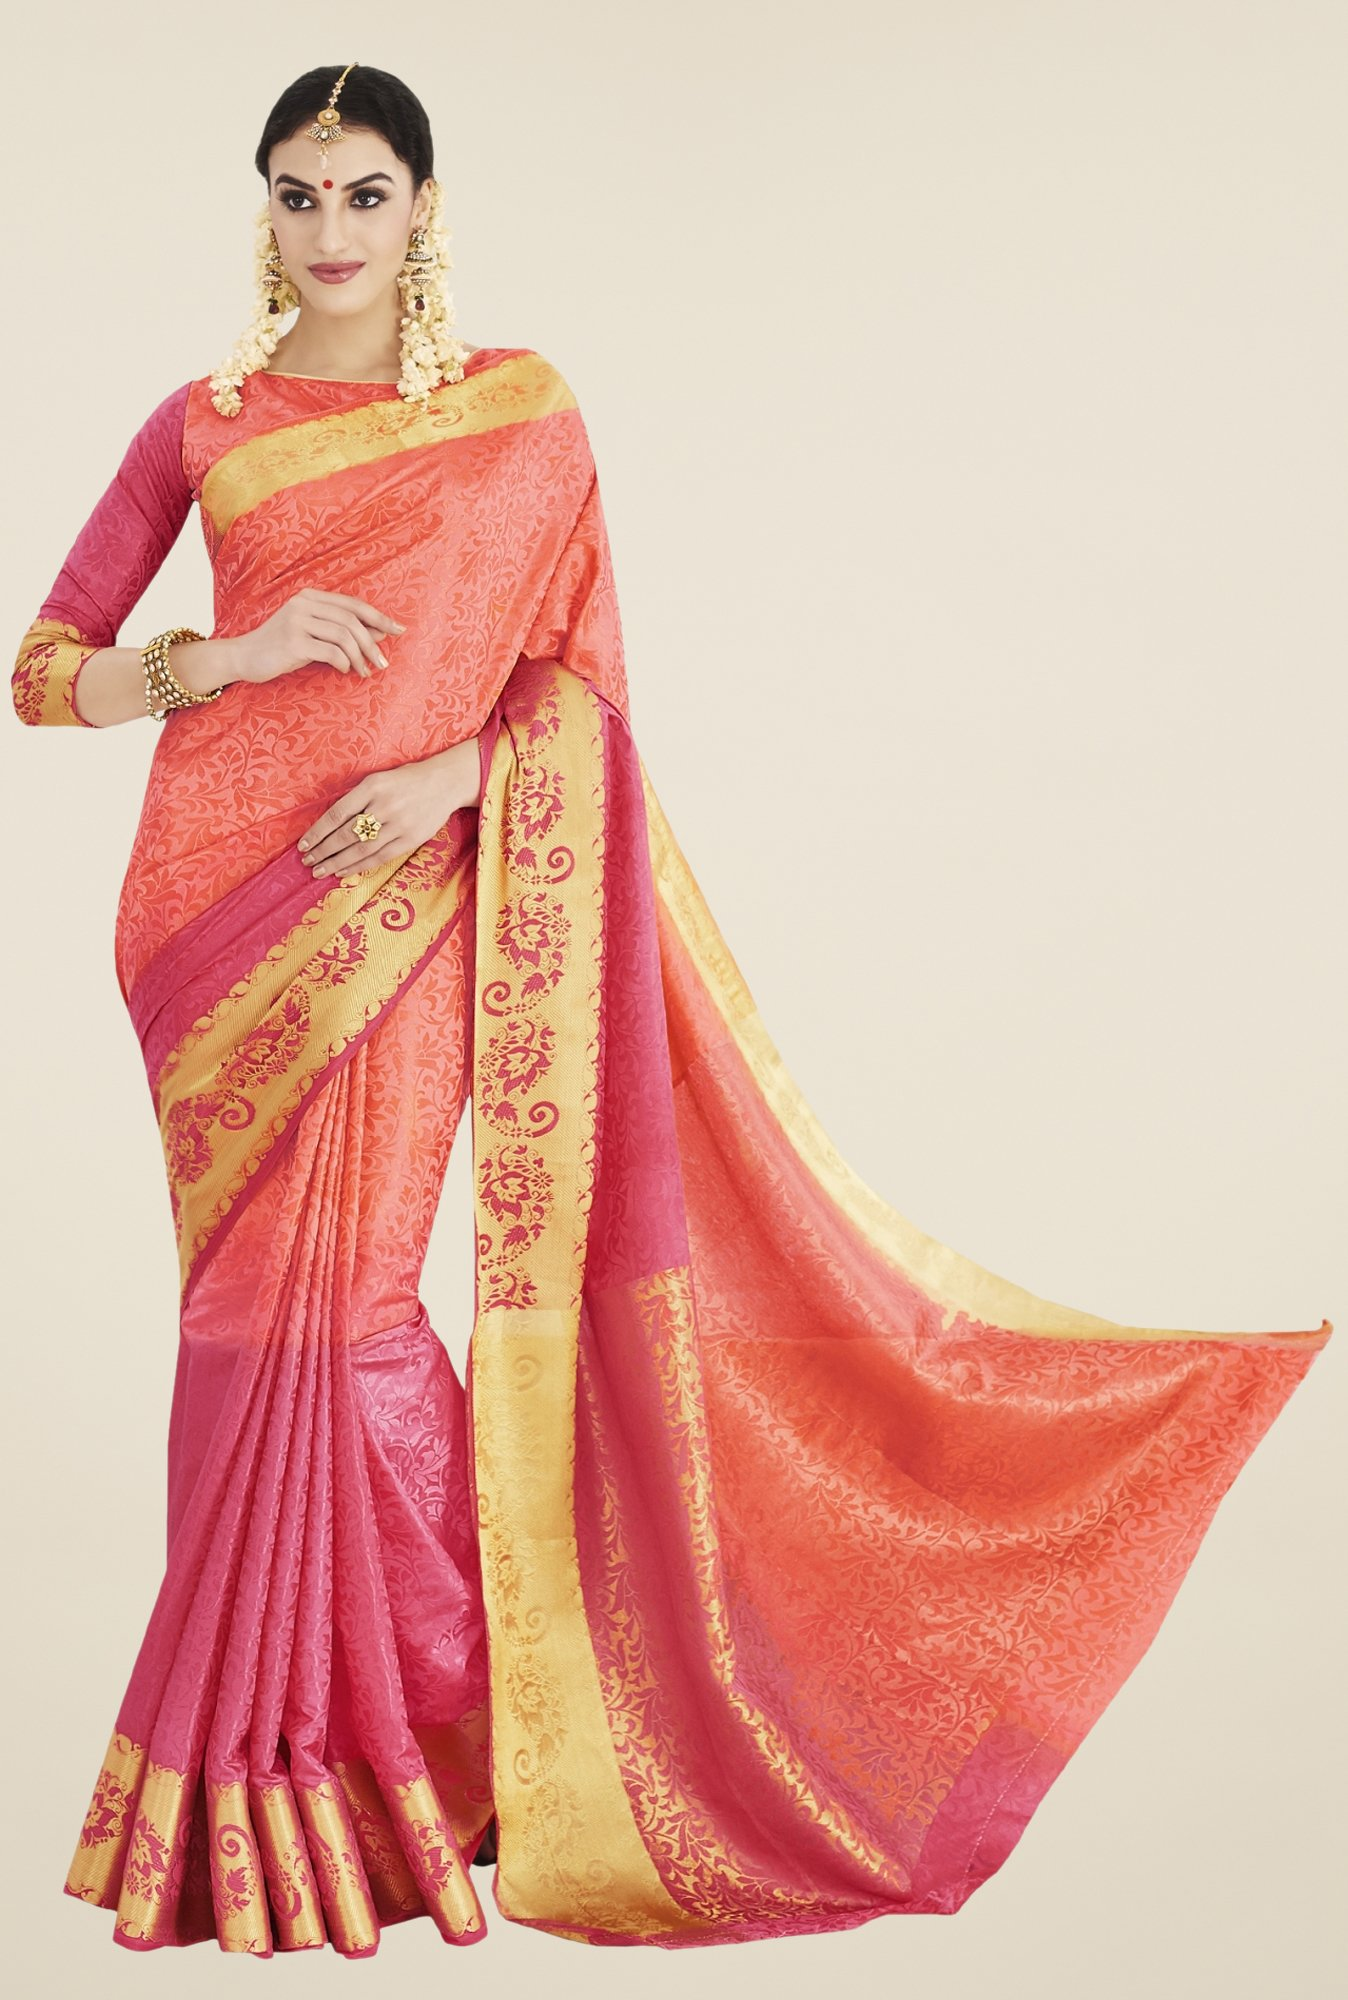 Triveni Orange & Maroon Printed Banarasi Silk Saree